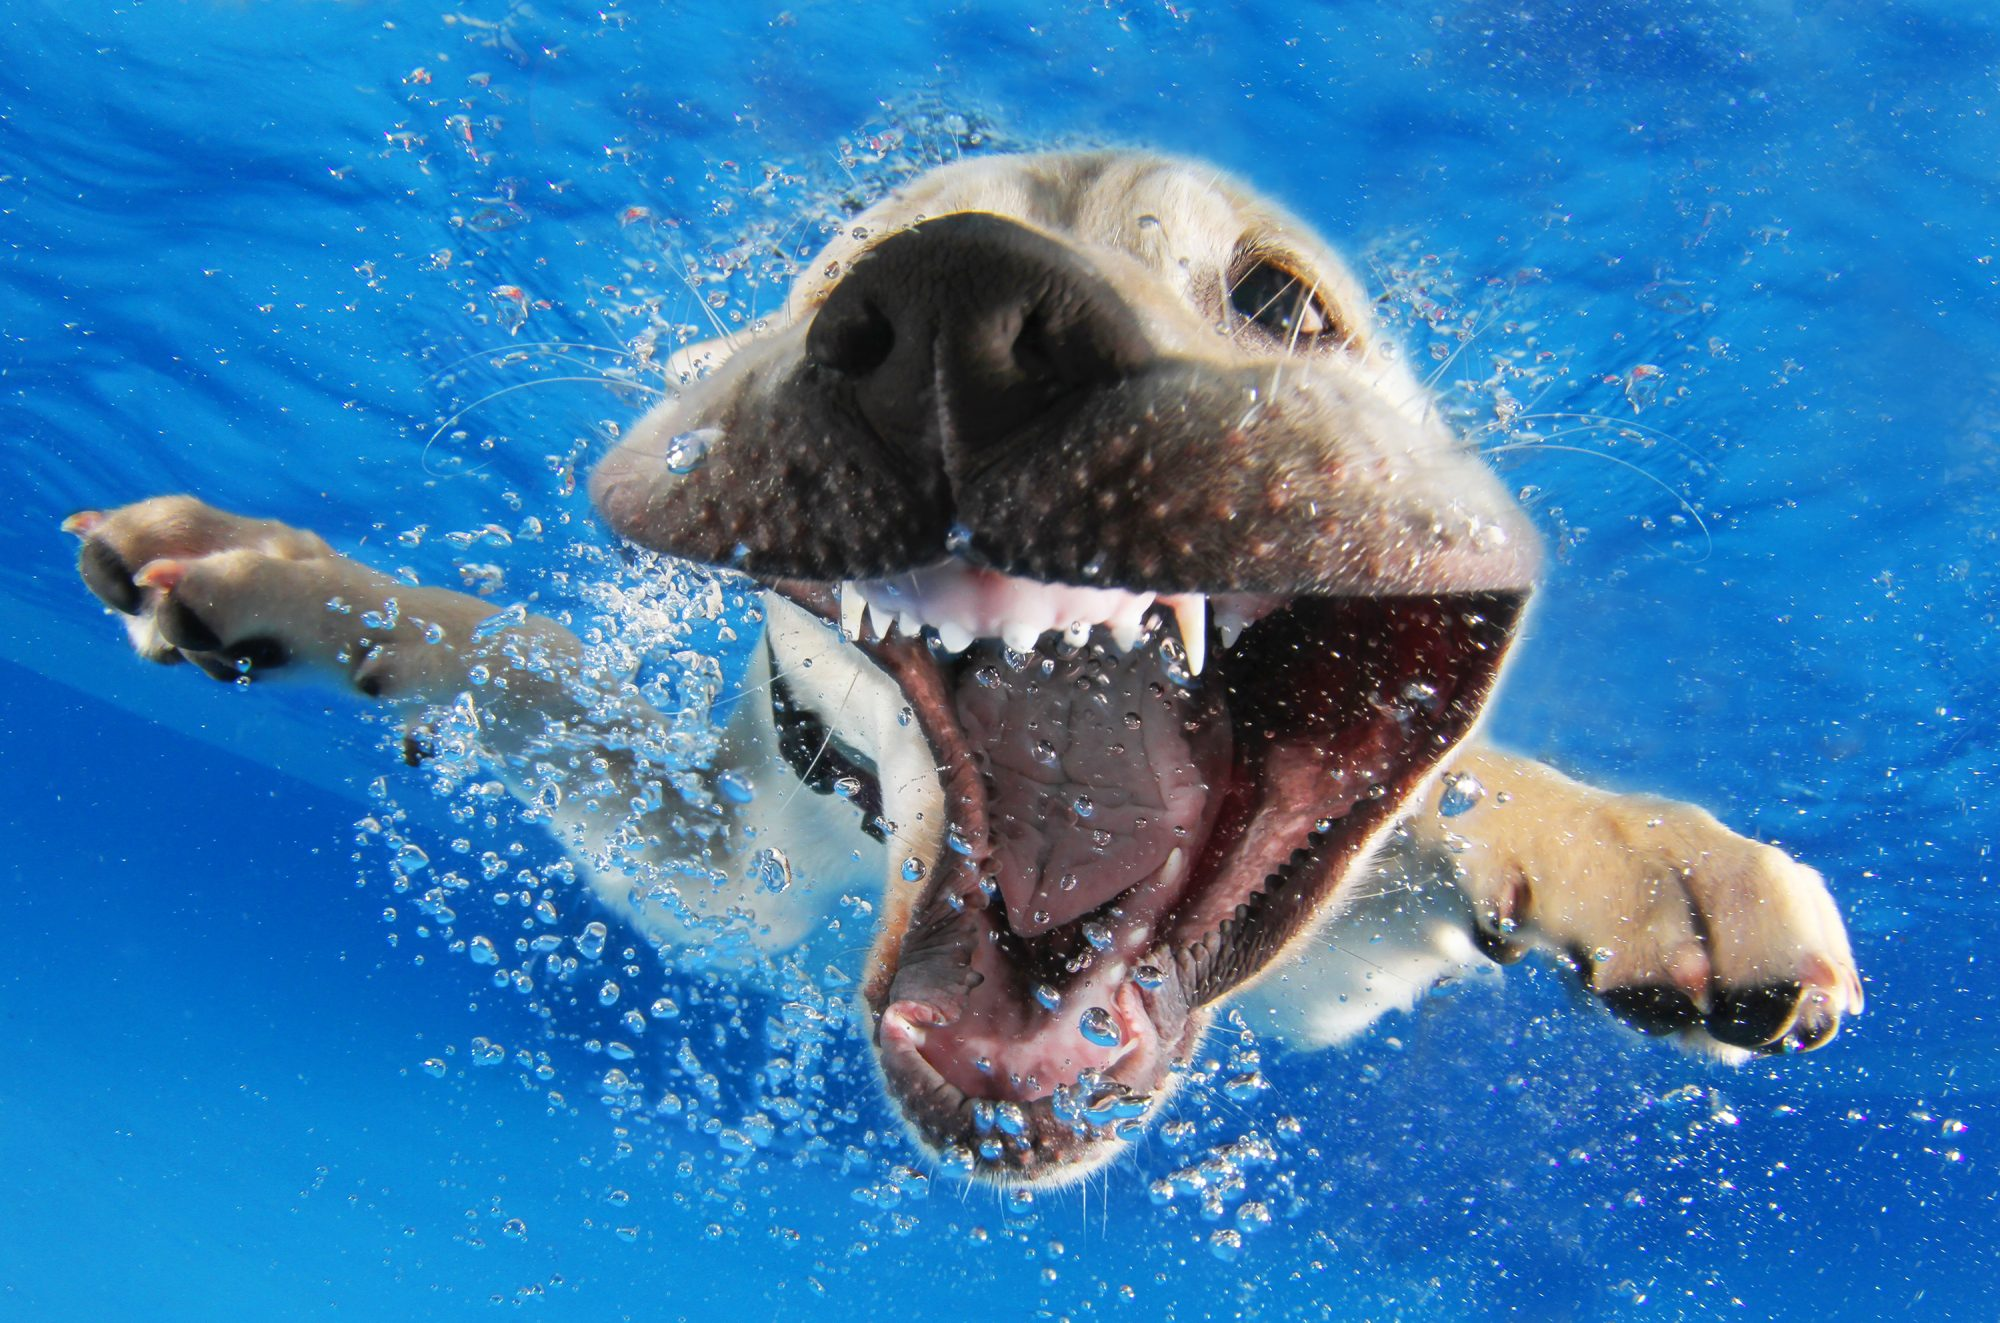 Reason, a 12-week-old yellow labrador retriever, swimming